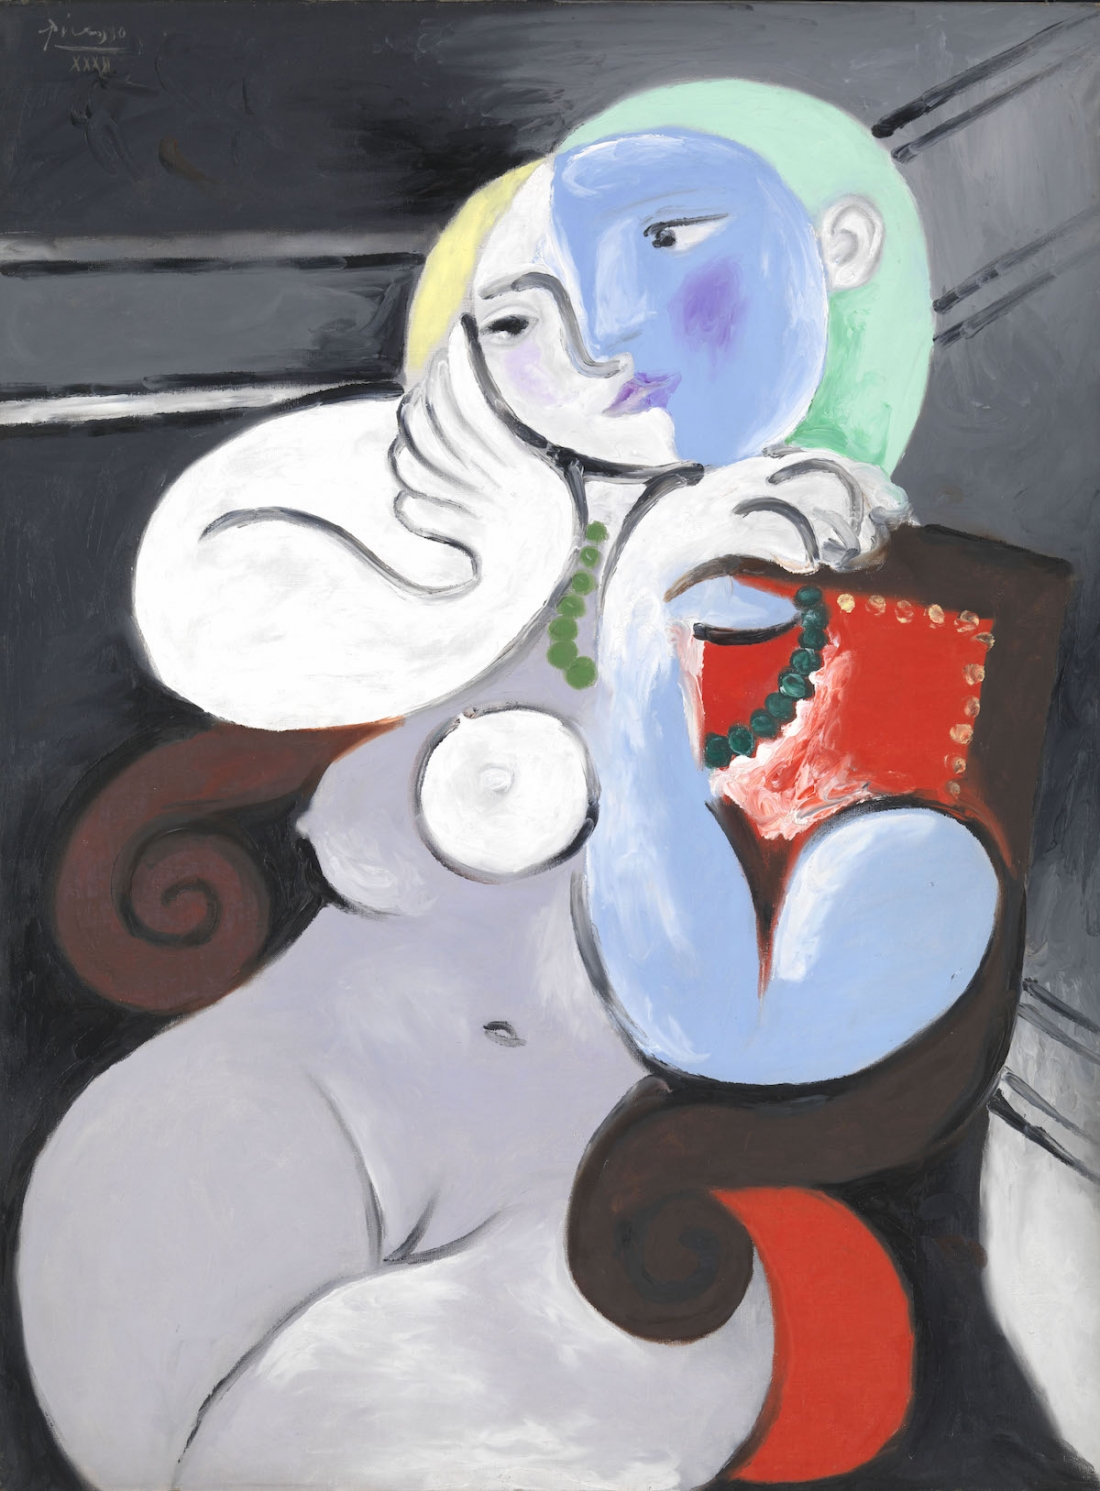 Pablo Picasso Nude Woman in a Red Armchair (Femme nue dans un fauteuil rouge) 1932 Oil paint on canvas 1299 x 972 mm Tate. Purchased 1953 © Succession Picasso/ DACS London, 2017